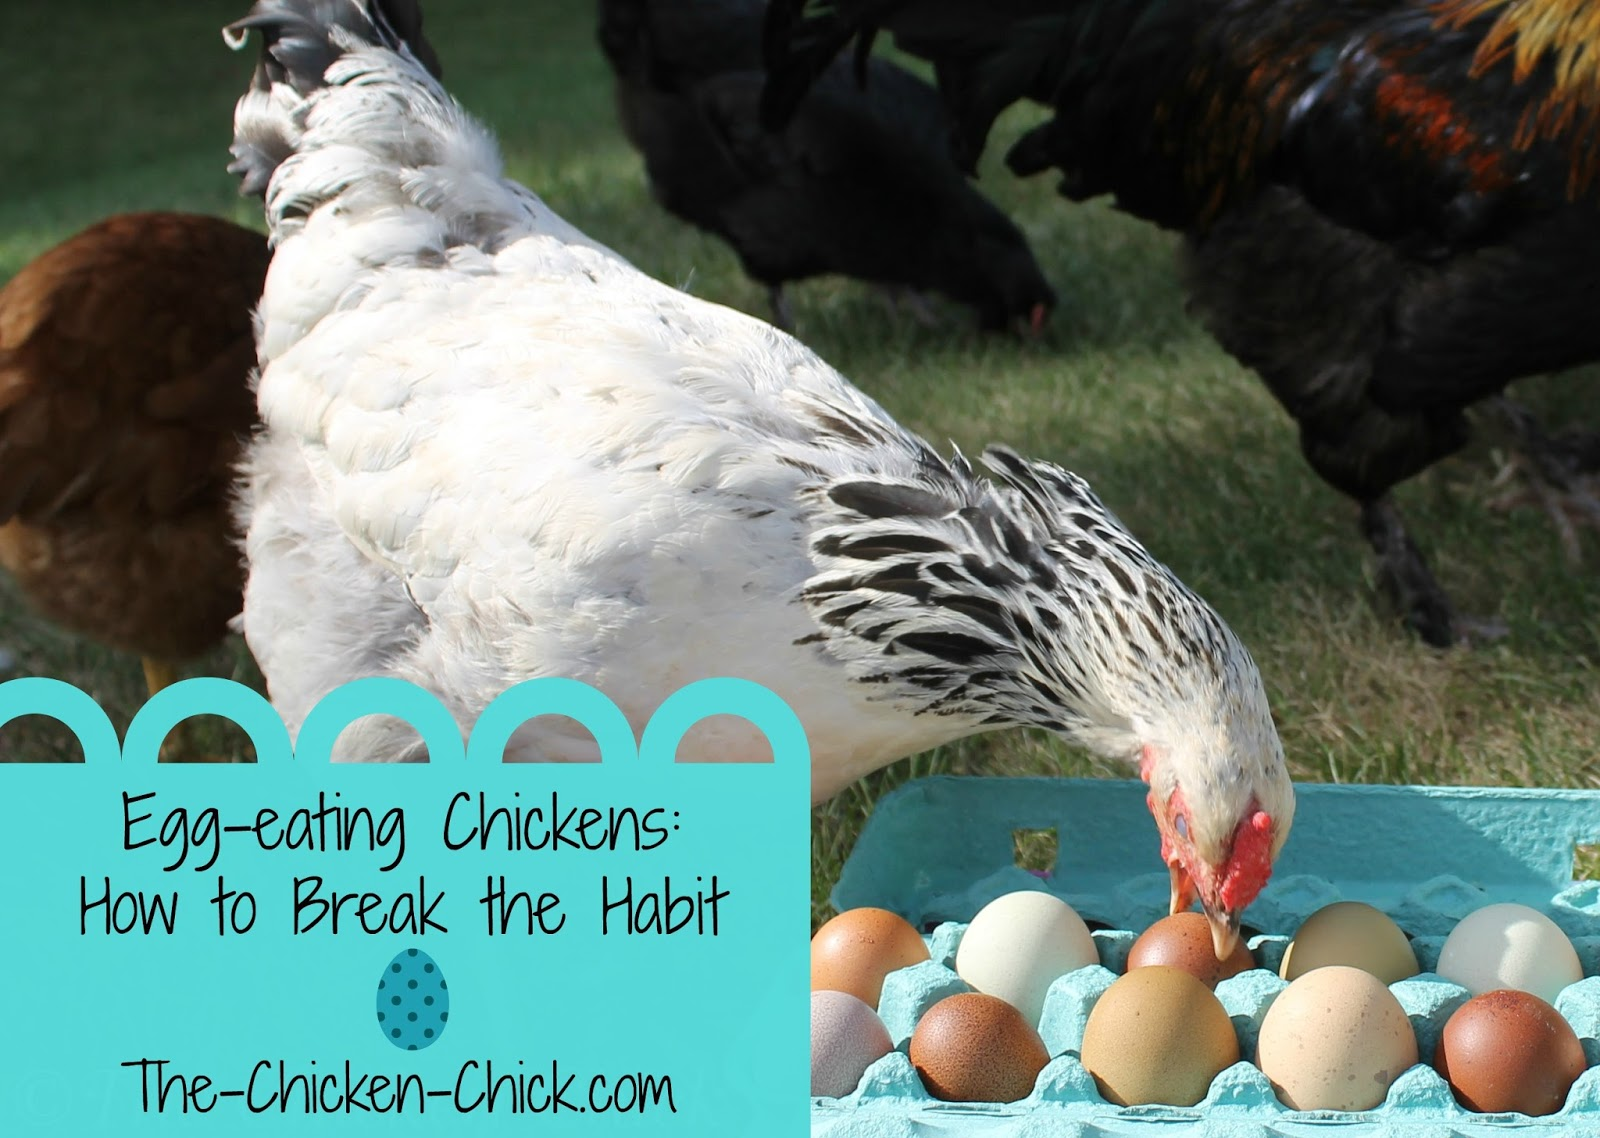 The Chicken Chick Egg Eating Chickens How to Break the Habit